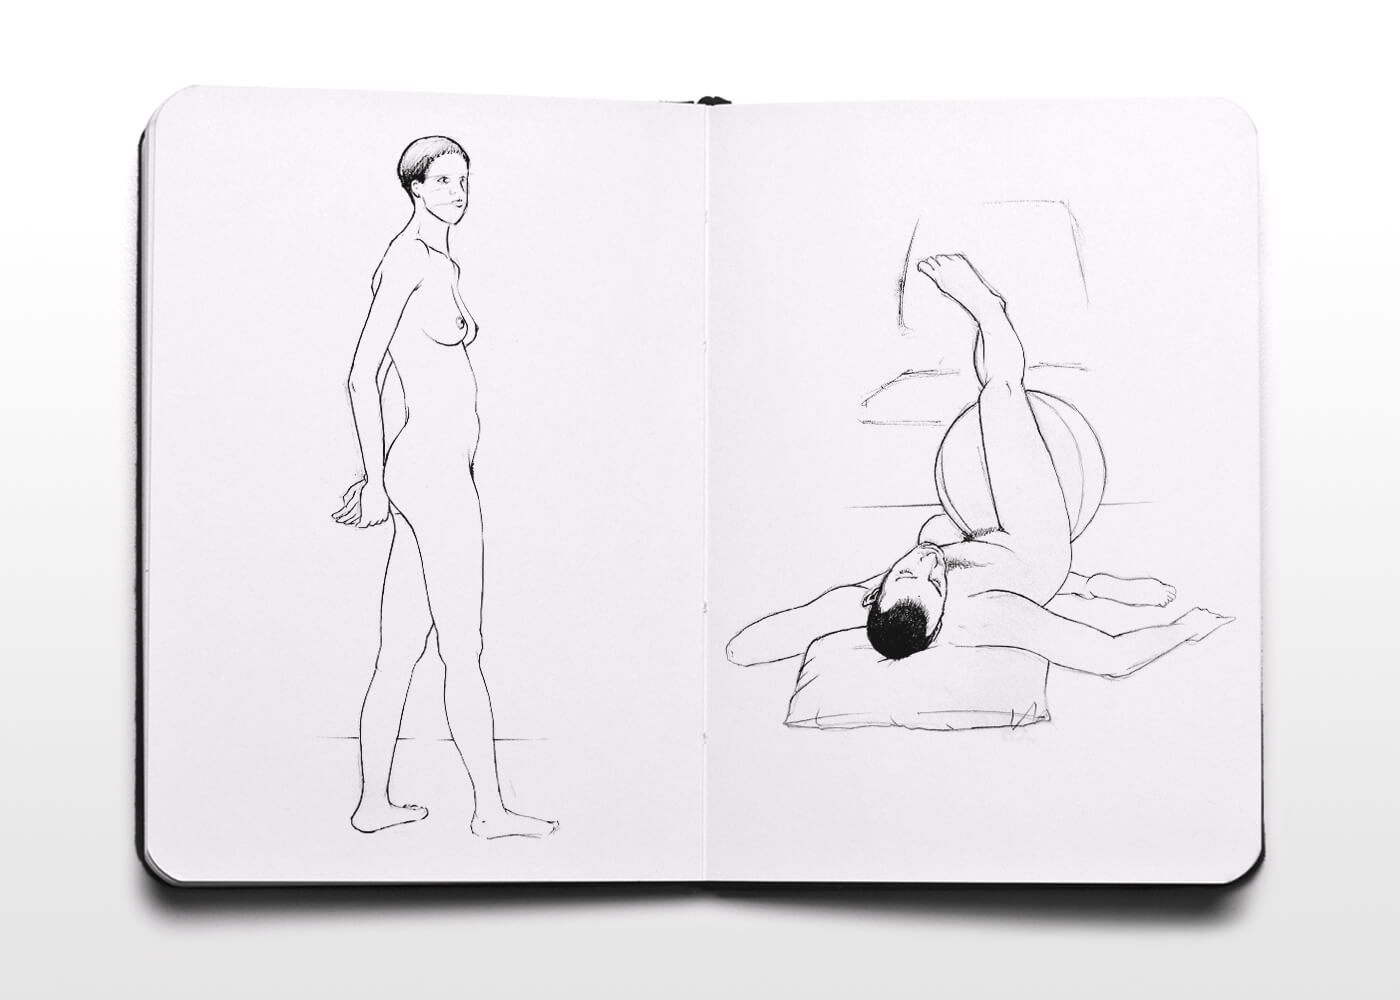 Bocetos De Desnudos - Nude Sketches